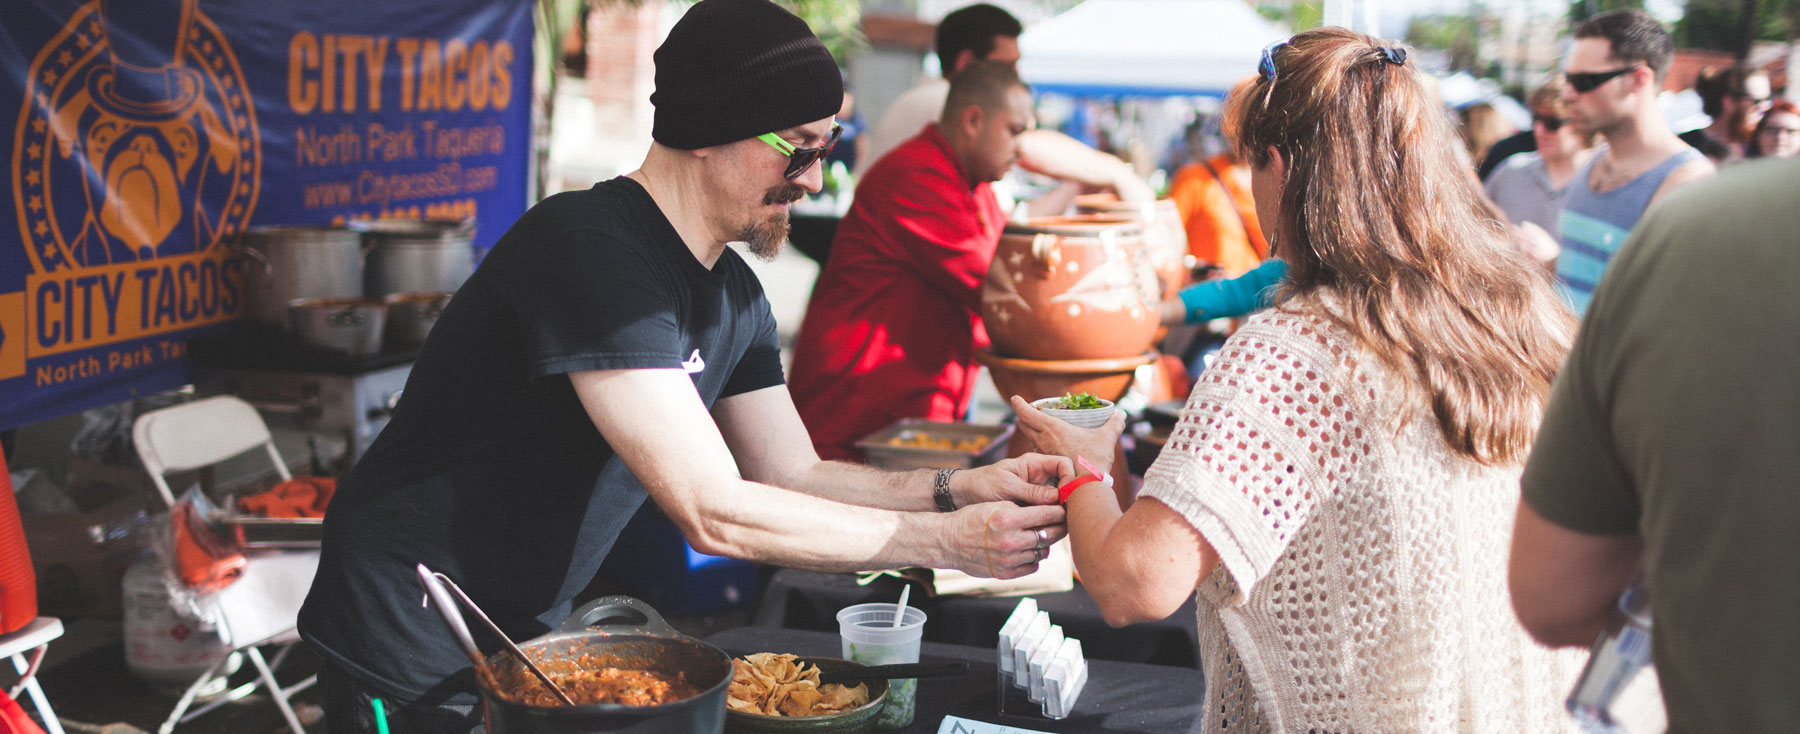 SoNo Fest & Chili Cook-Off